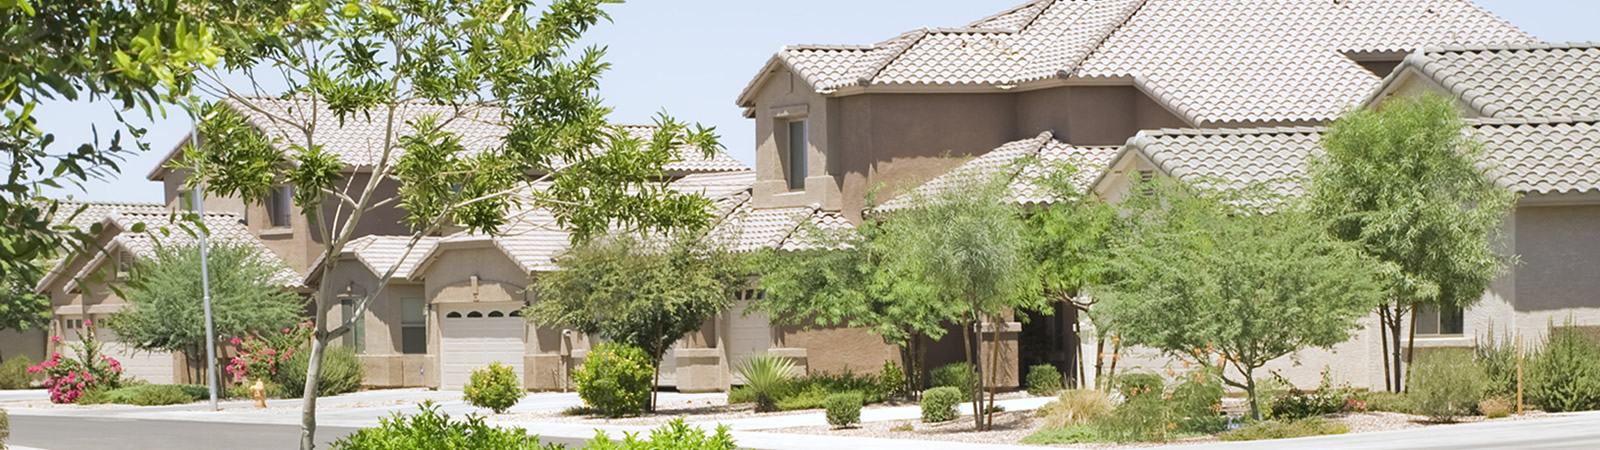 Roofing Contractor Palm Desert Reliable Roofing